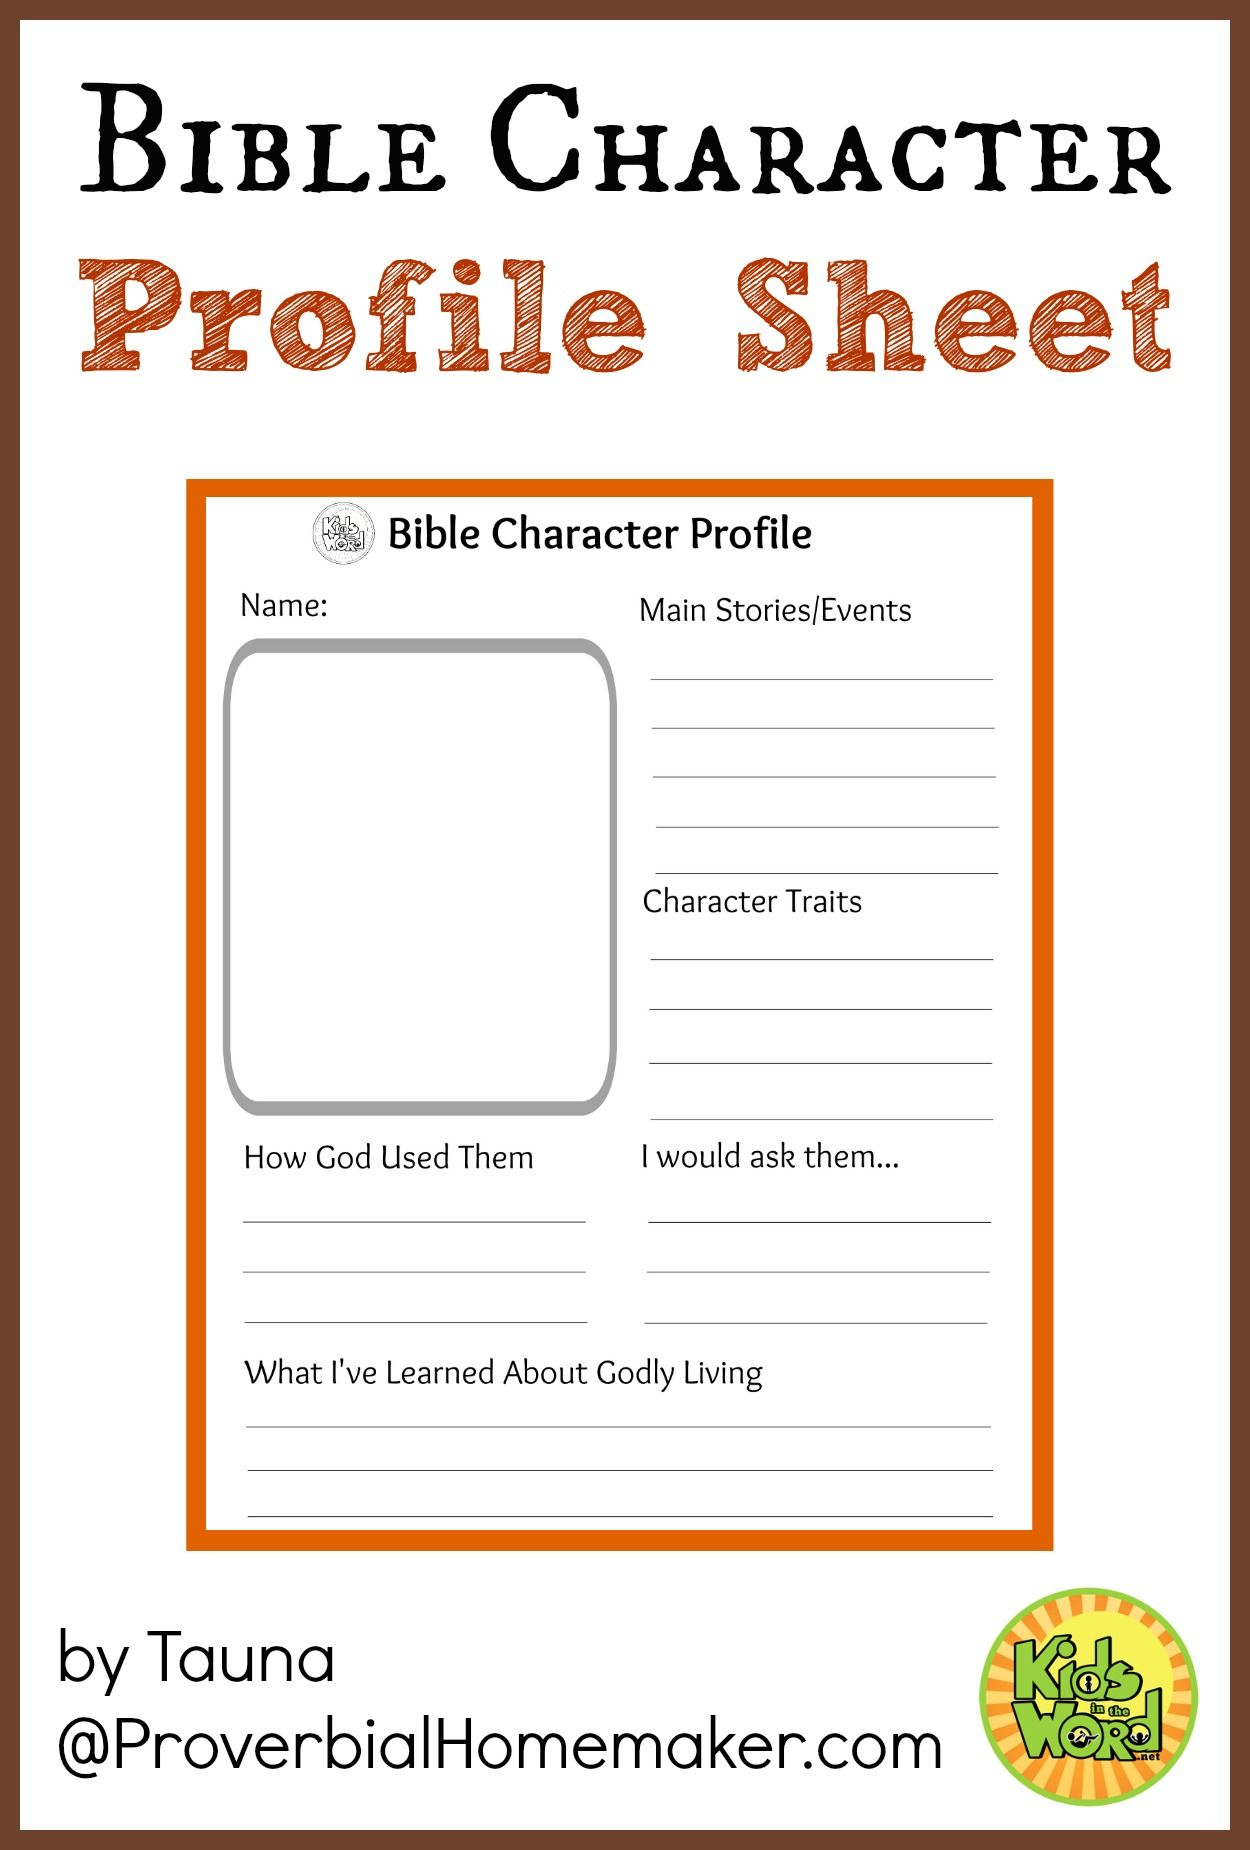 Worksheets Bible Study Worksheets For Kids bible character profile sheet sunday school and homeschool sheet